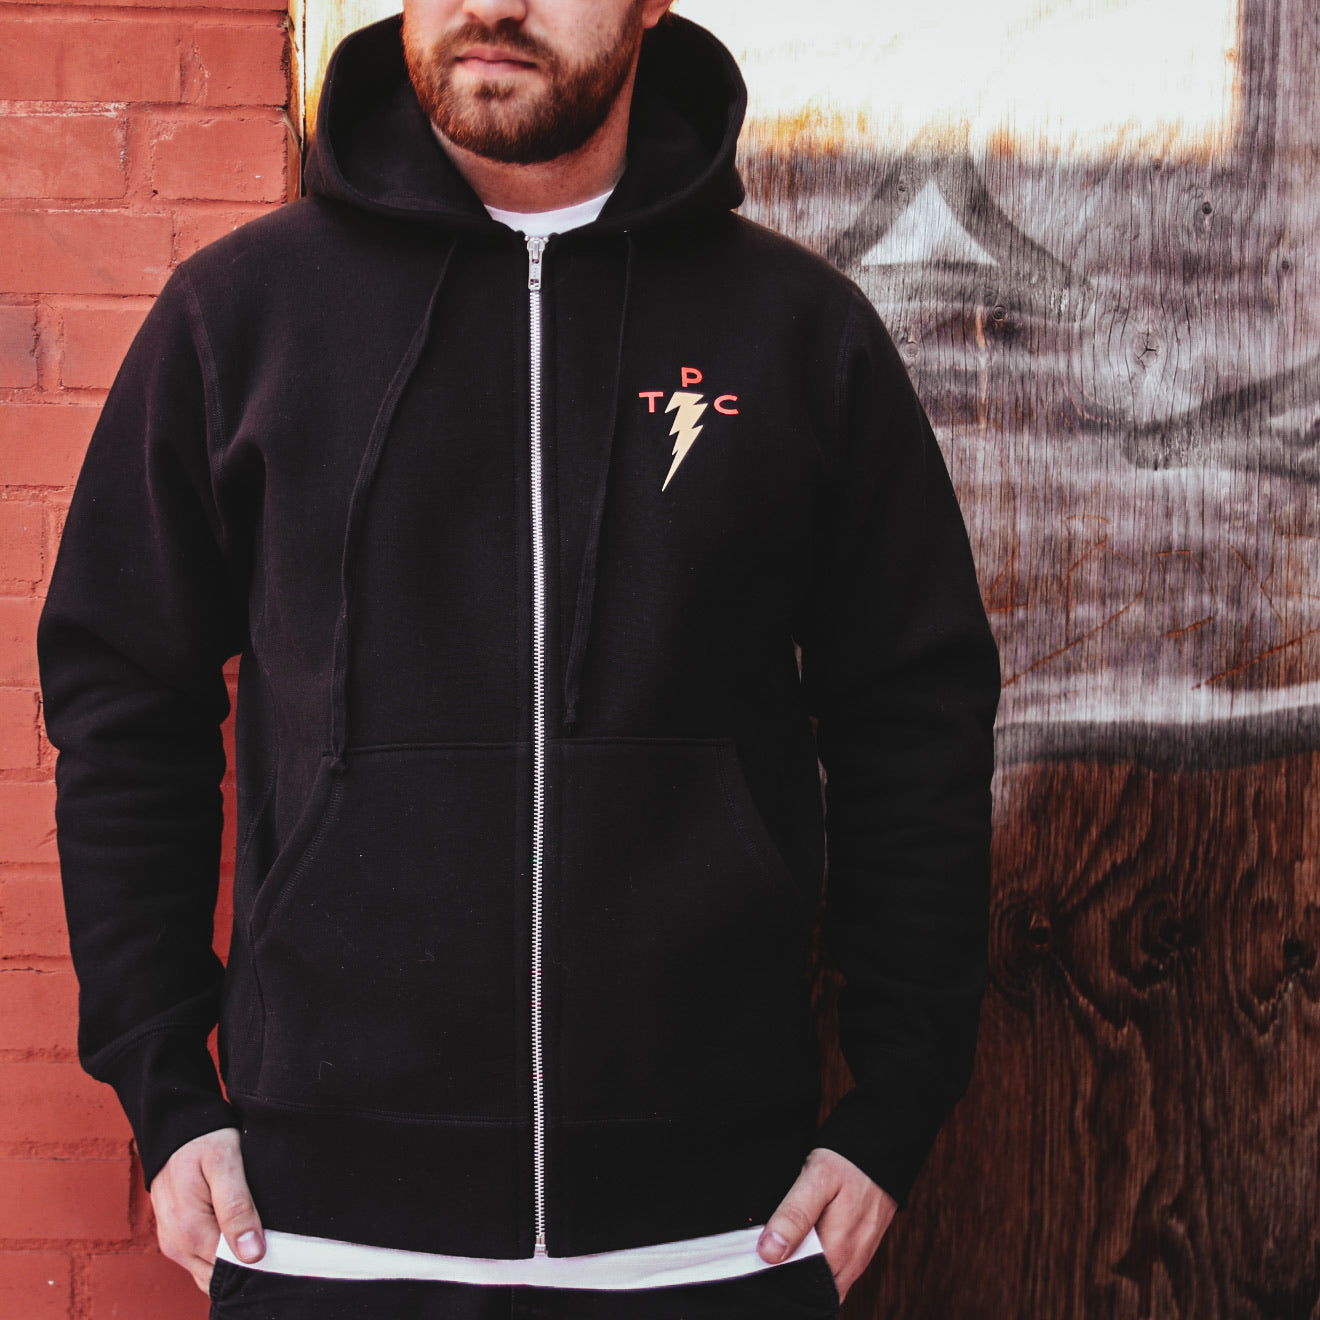 TPC Bolt Zip Hoody - Black